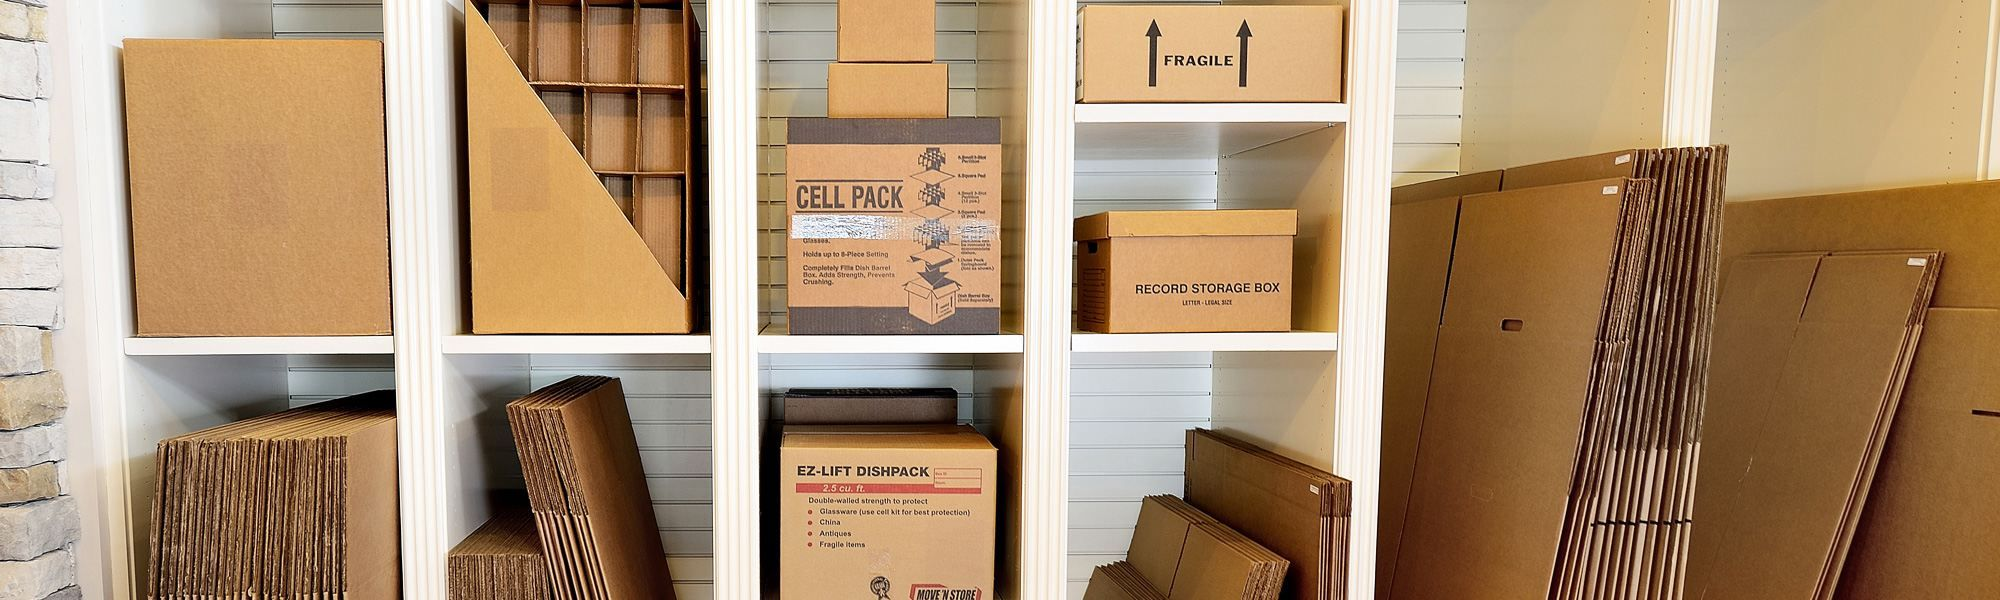 Amazing Spaces Storage Centers In Houston The Woodlands And